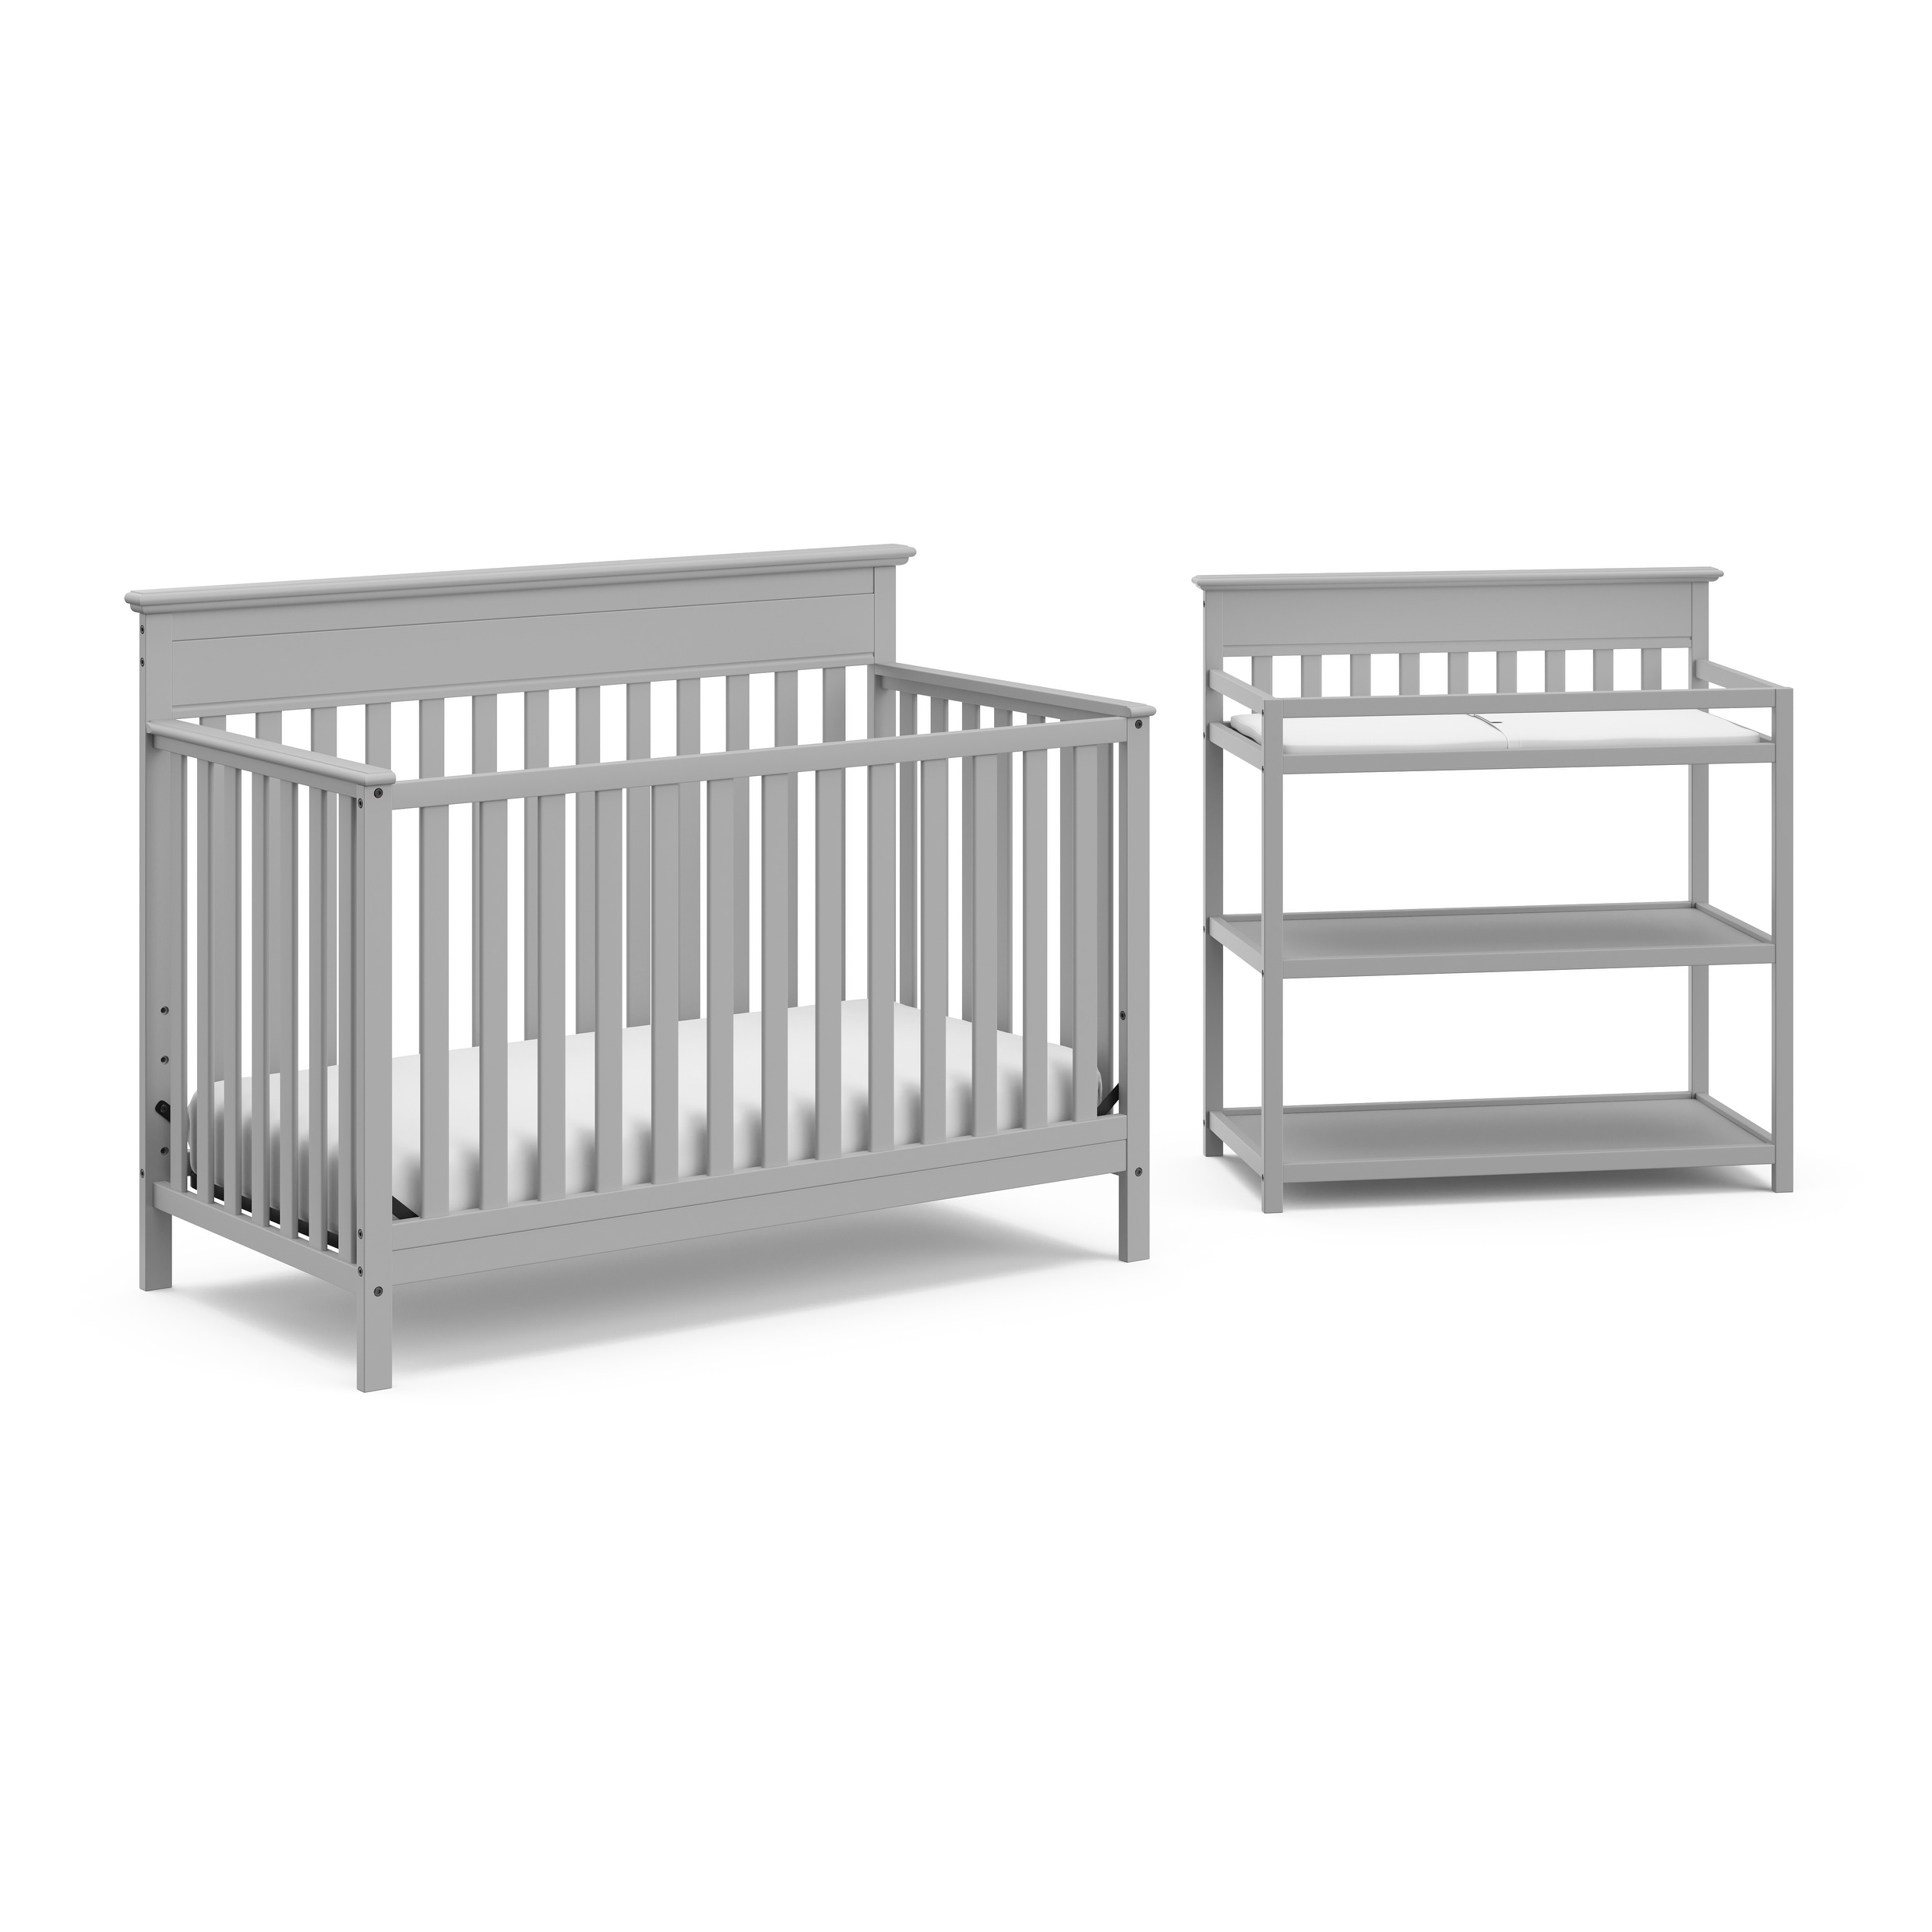 Crib And Change Table Nursery Set In A Box 4 In 1 Convertible Crib Changing Table With Water Resistant Change Pad On Sale Overstock 30077533